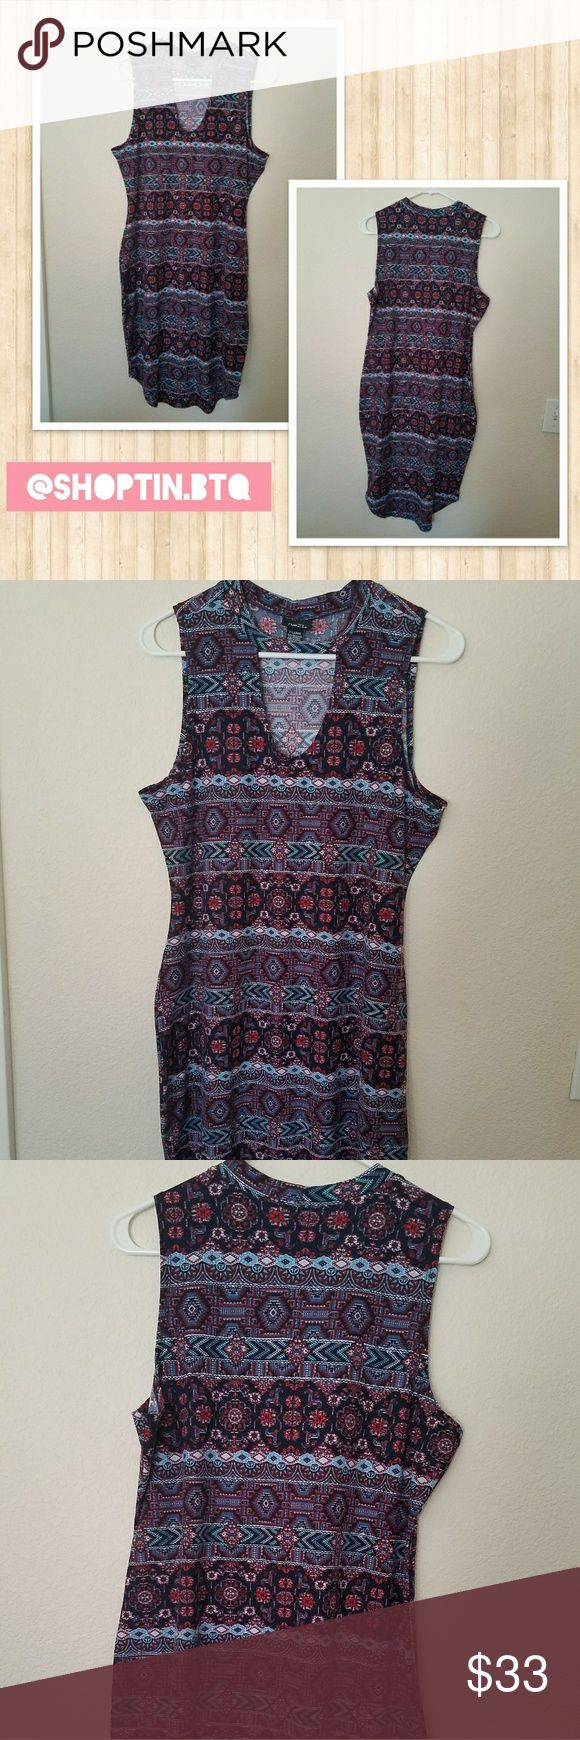 Aztec Keyhole Bodycon Dress Cute flirty bodycon dress in aztec print from Rue21. Complete the look with a moto jacket and wedges for an edgy evening look! Super sexy and gorgeous!   Size Large. Dresses Midi